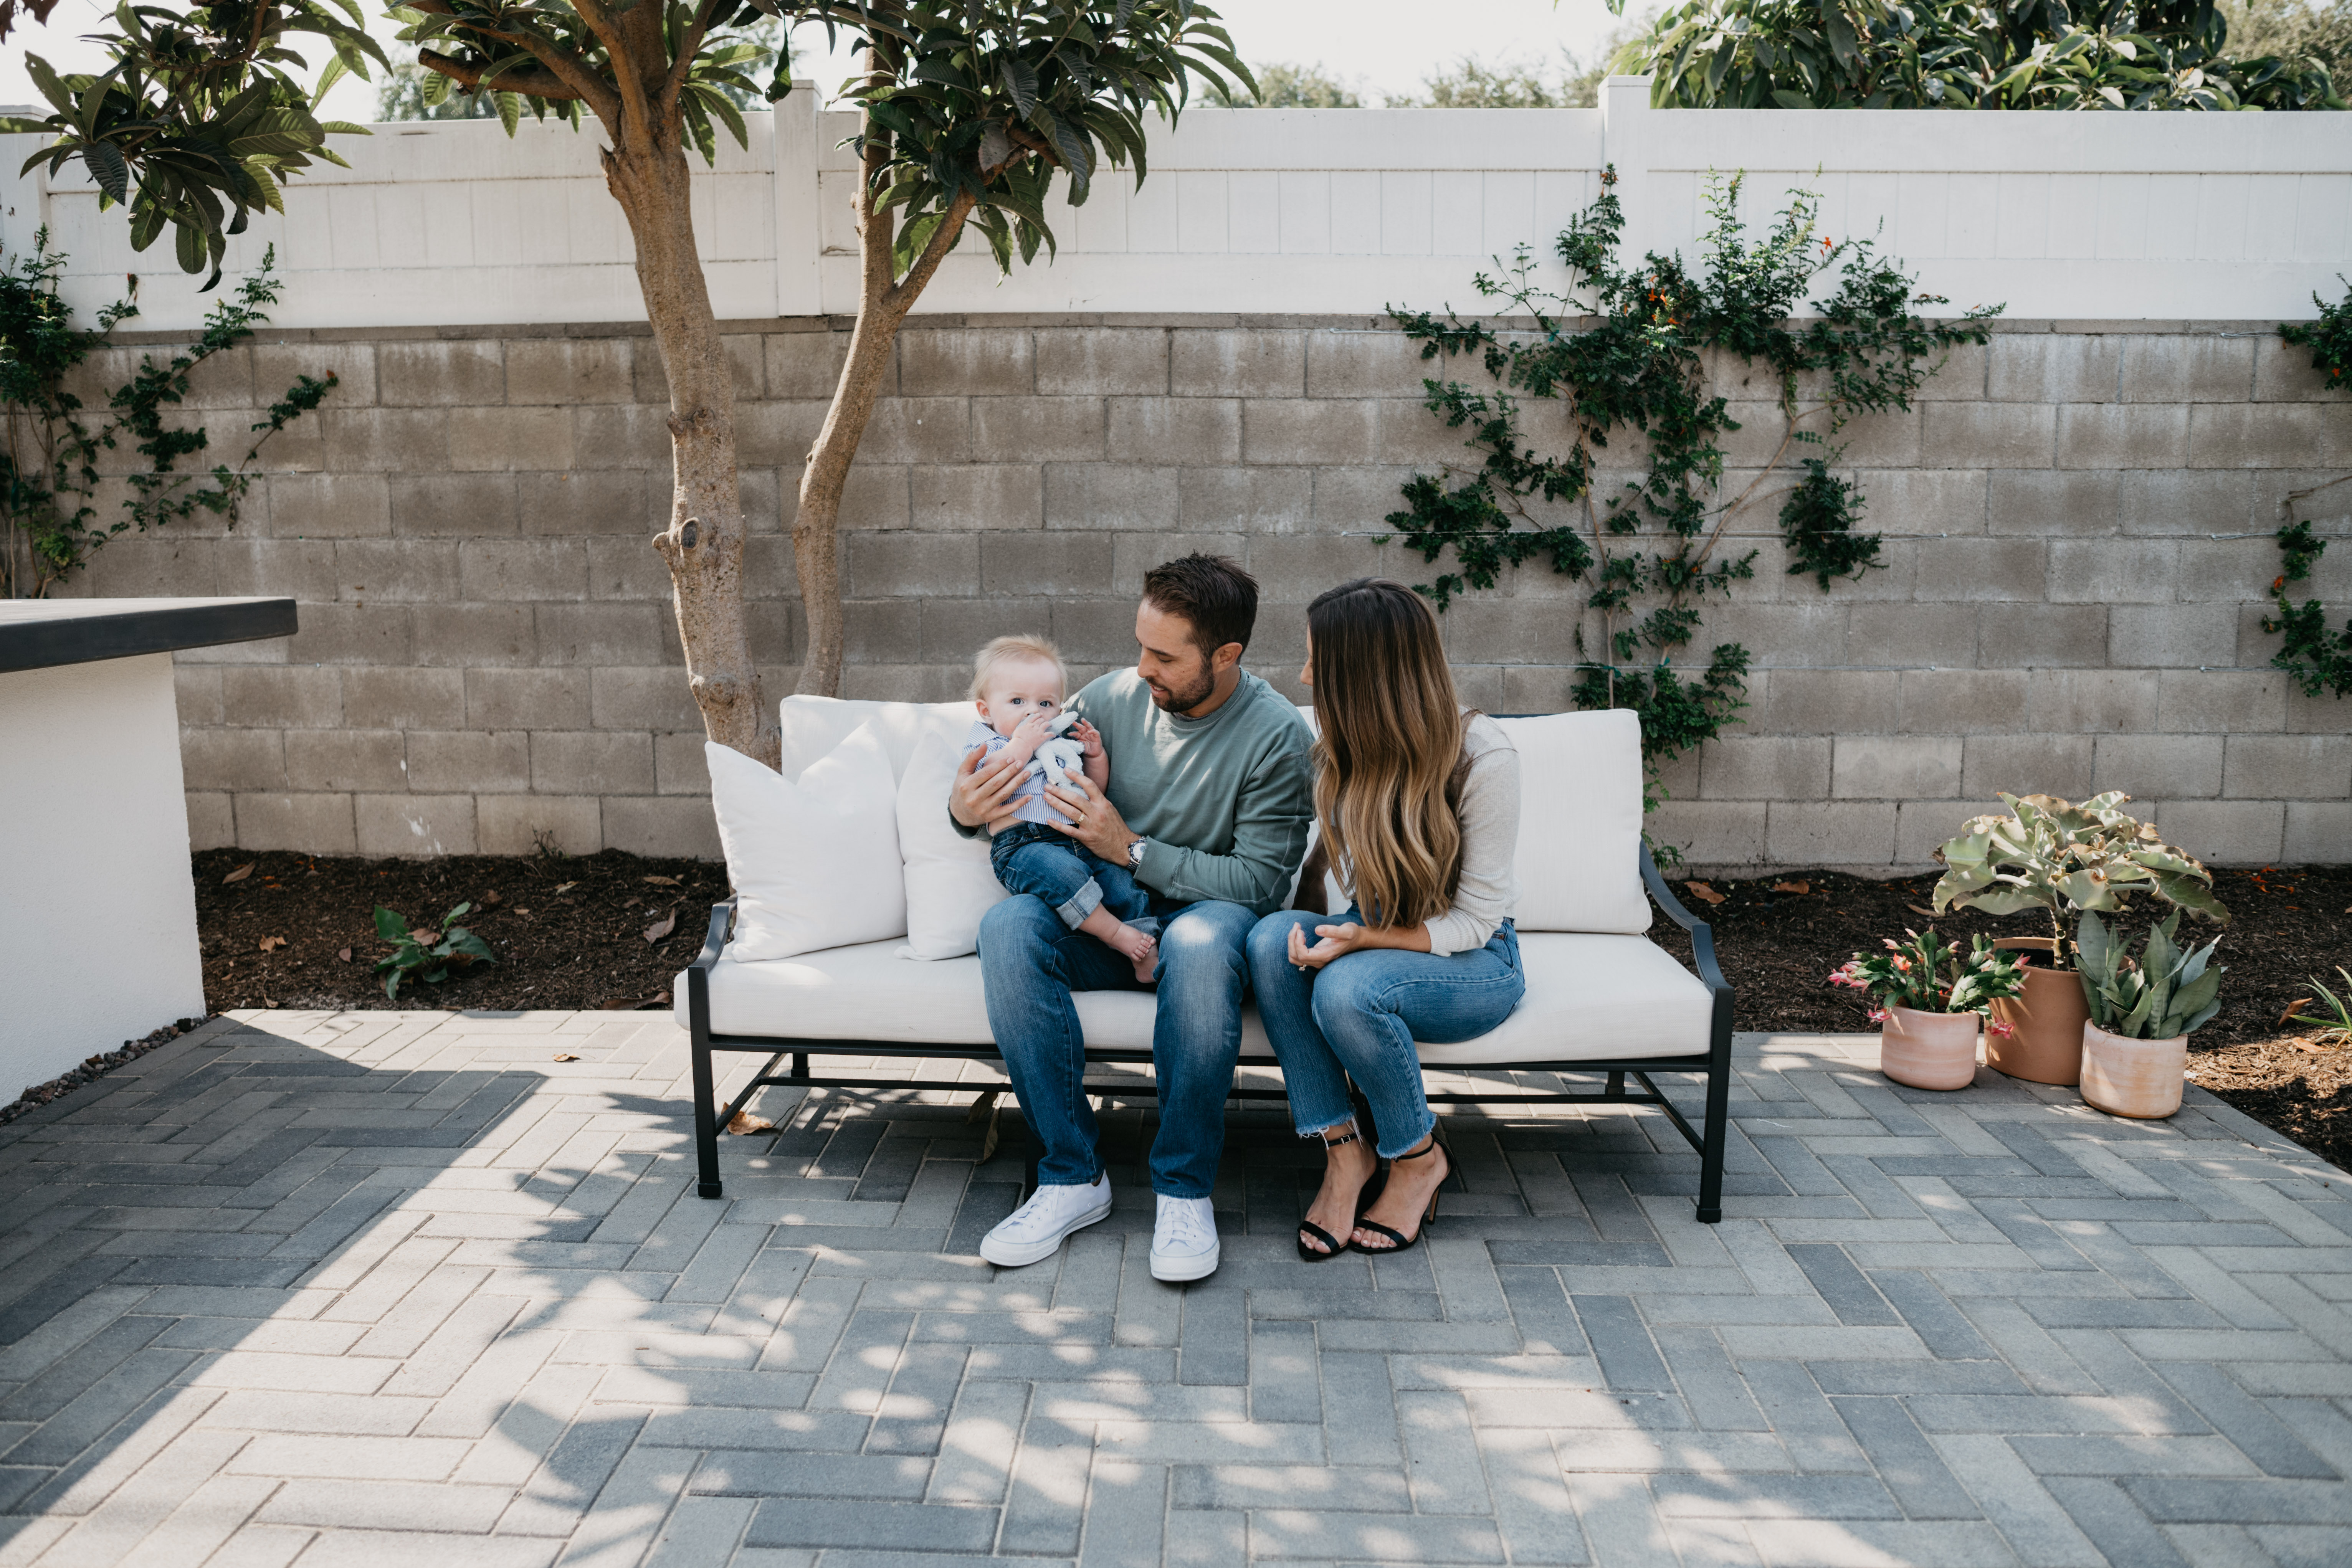 Long Beach Family Photo Session, image by Fatima Elreda Photo